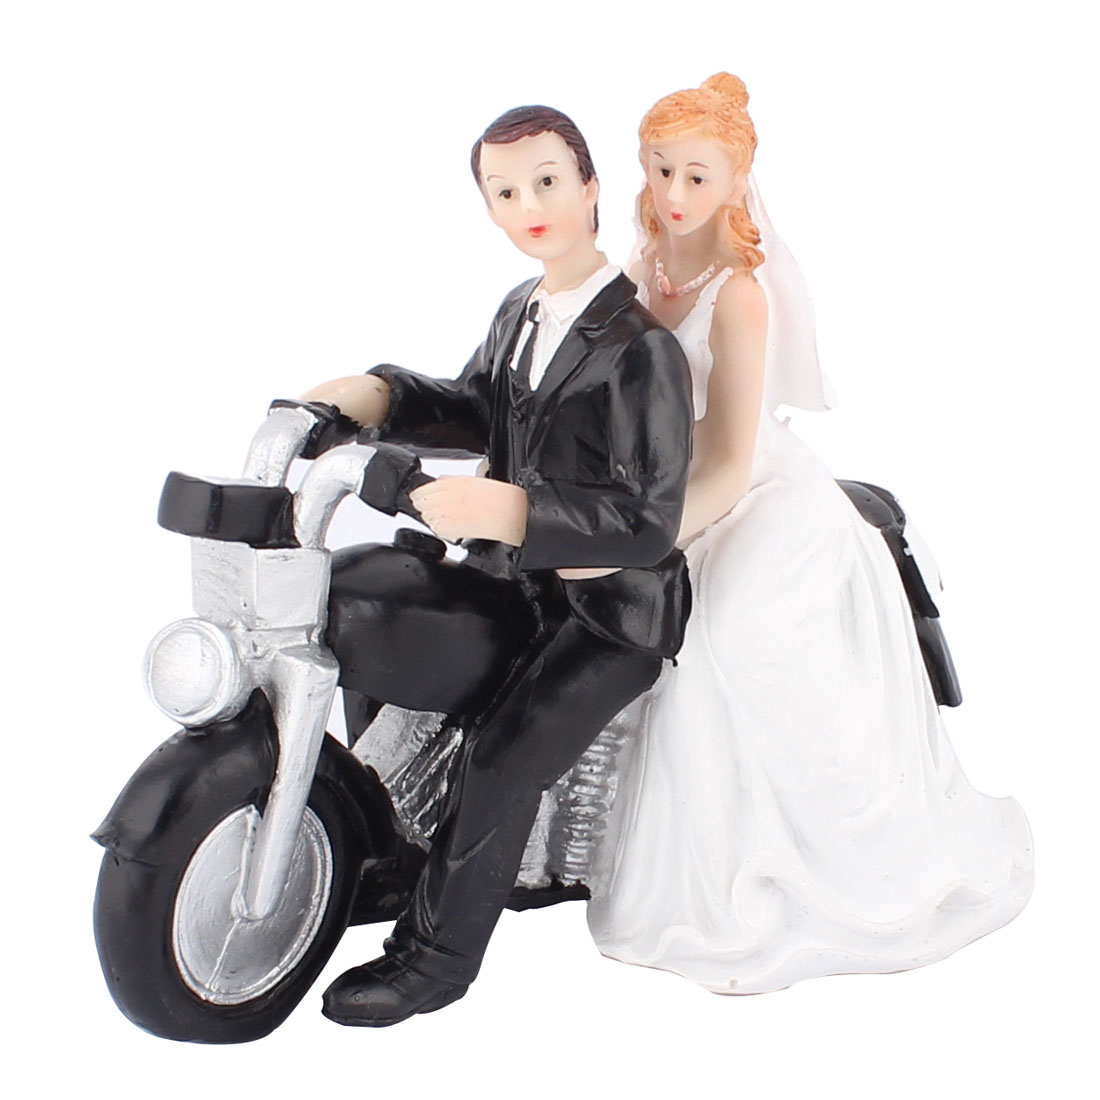 Bride Groom Motor Couple Figurine Wedding Cake Topper Decoration Gift Favor